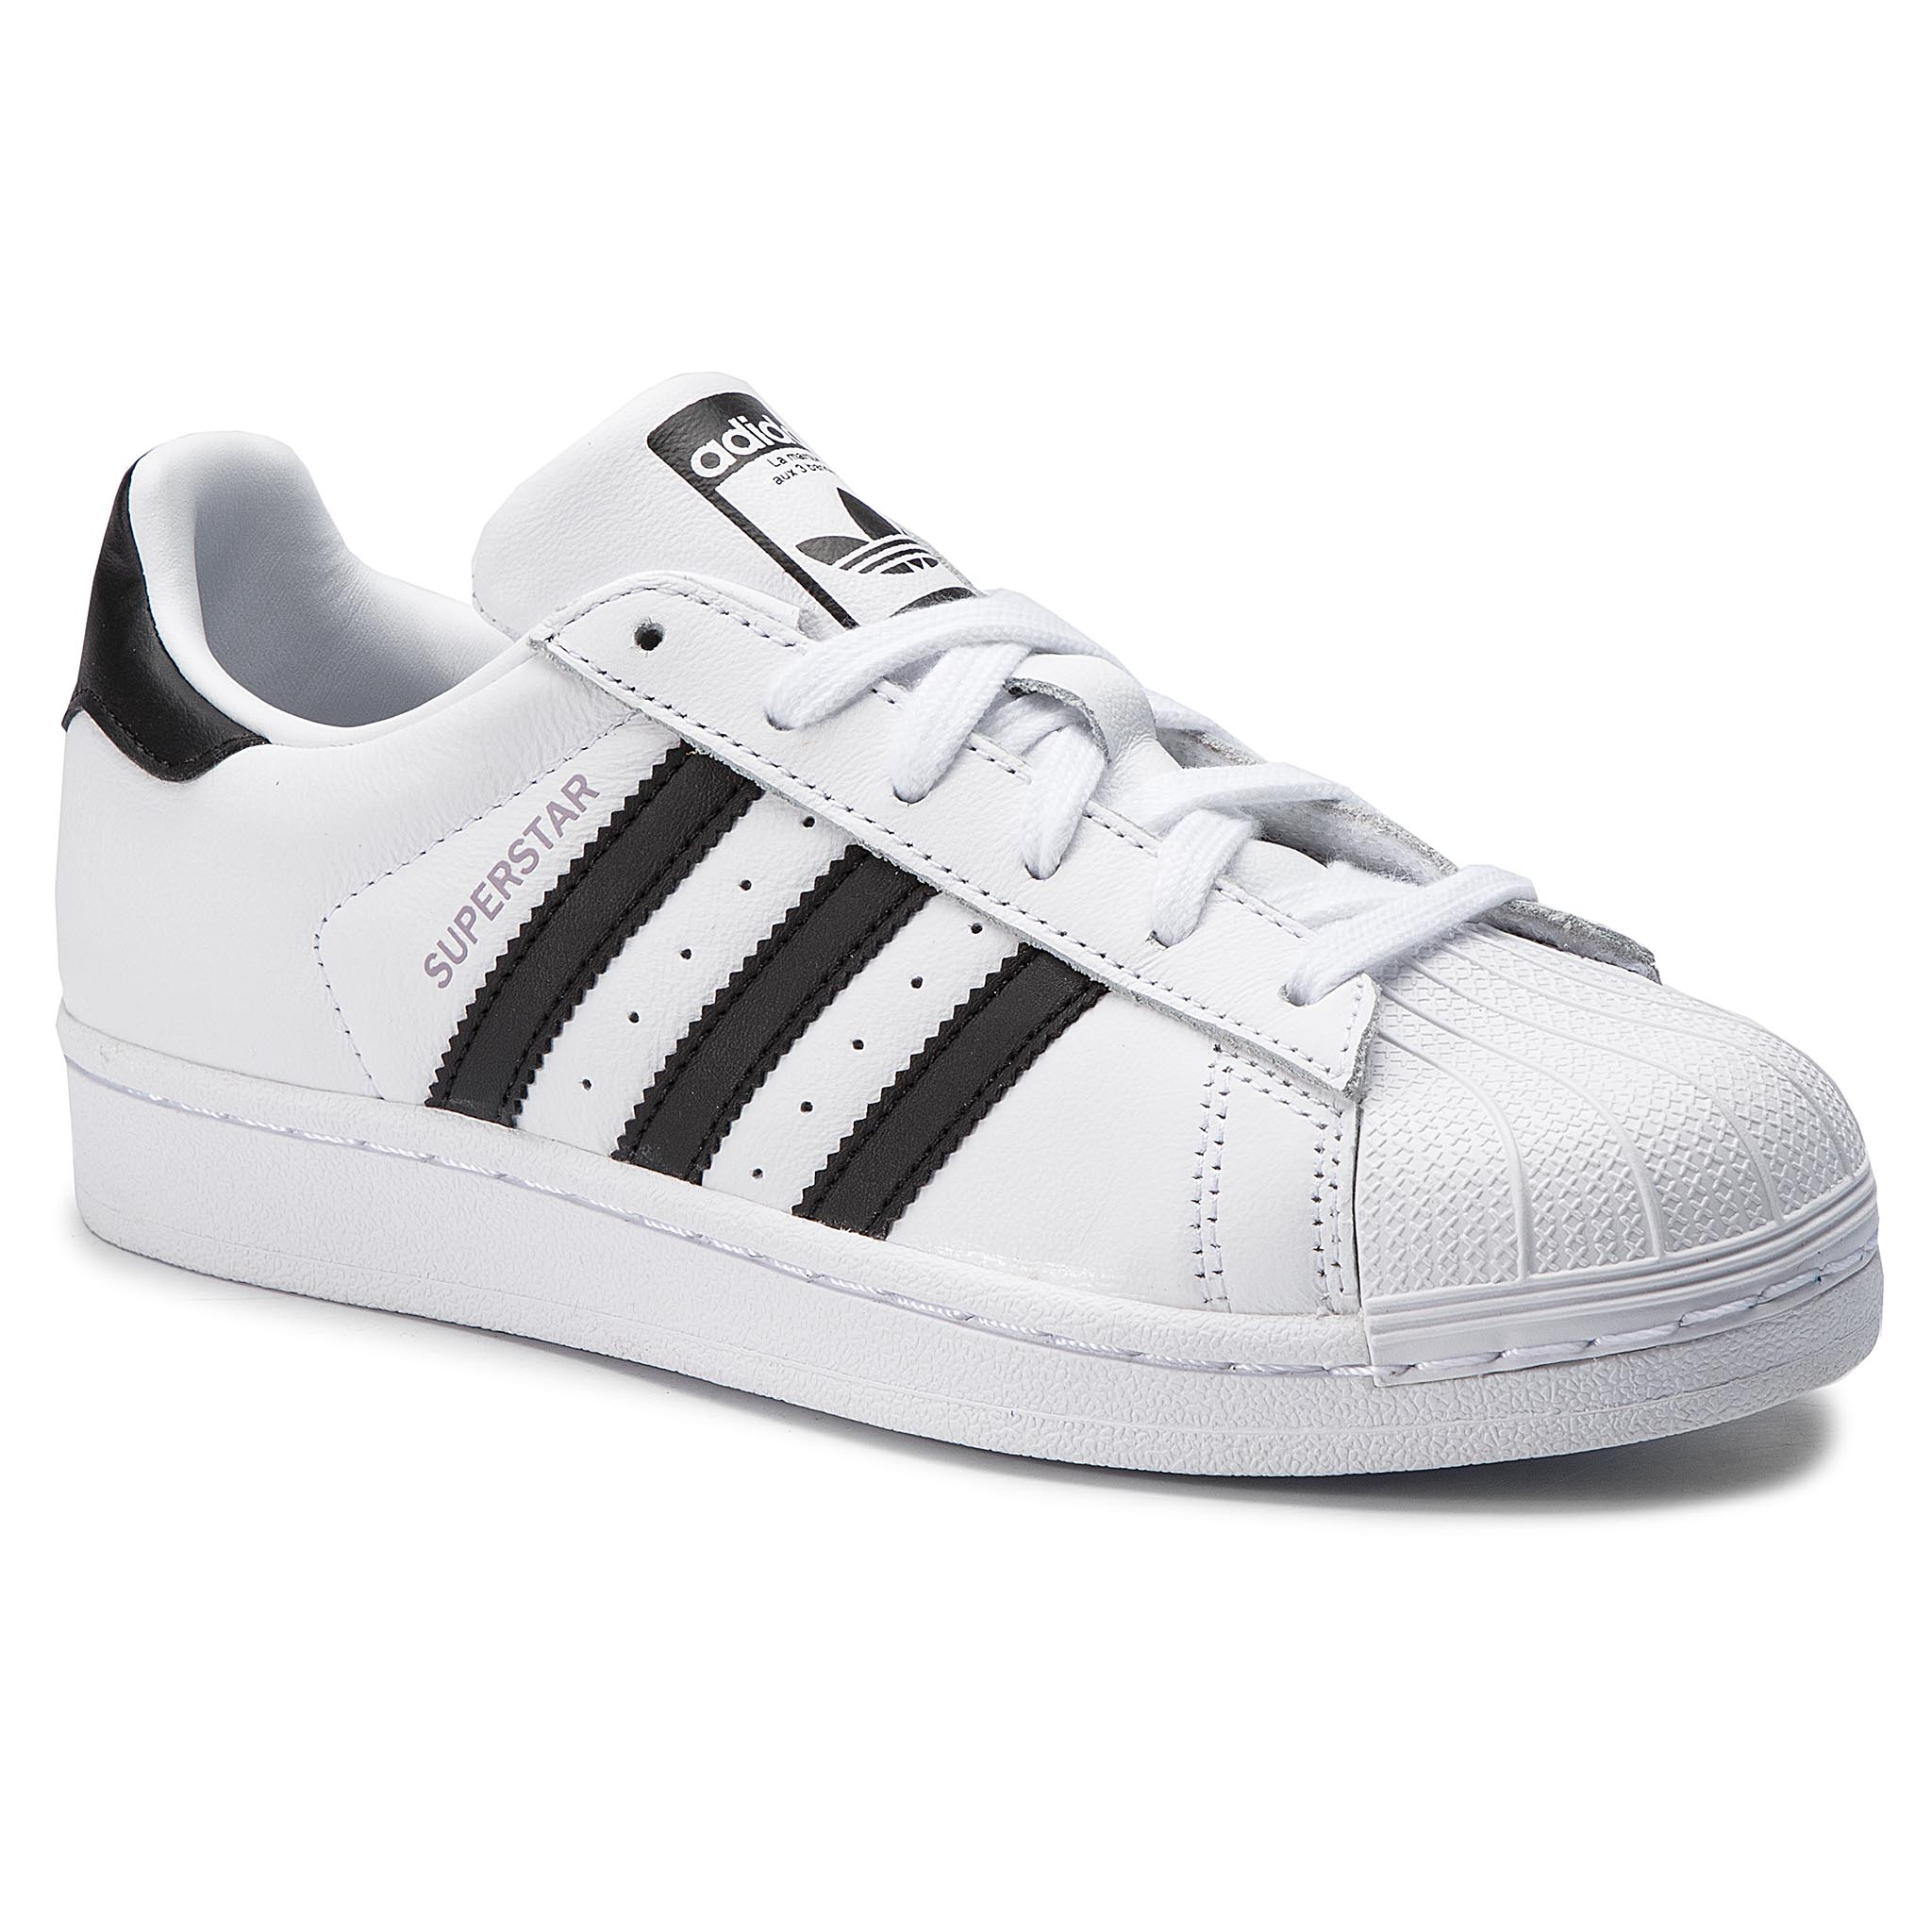 1fc4586dfd2ce Shoes adidas - Superstar W CG5463 Ftwwht Cybemt Ftwwht - Sneakers ...